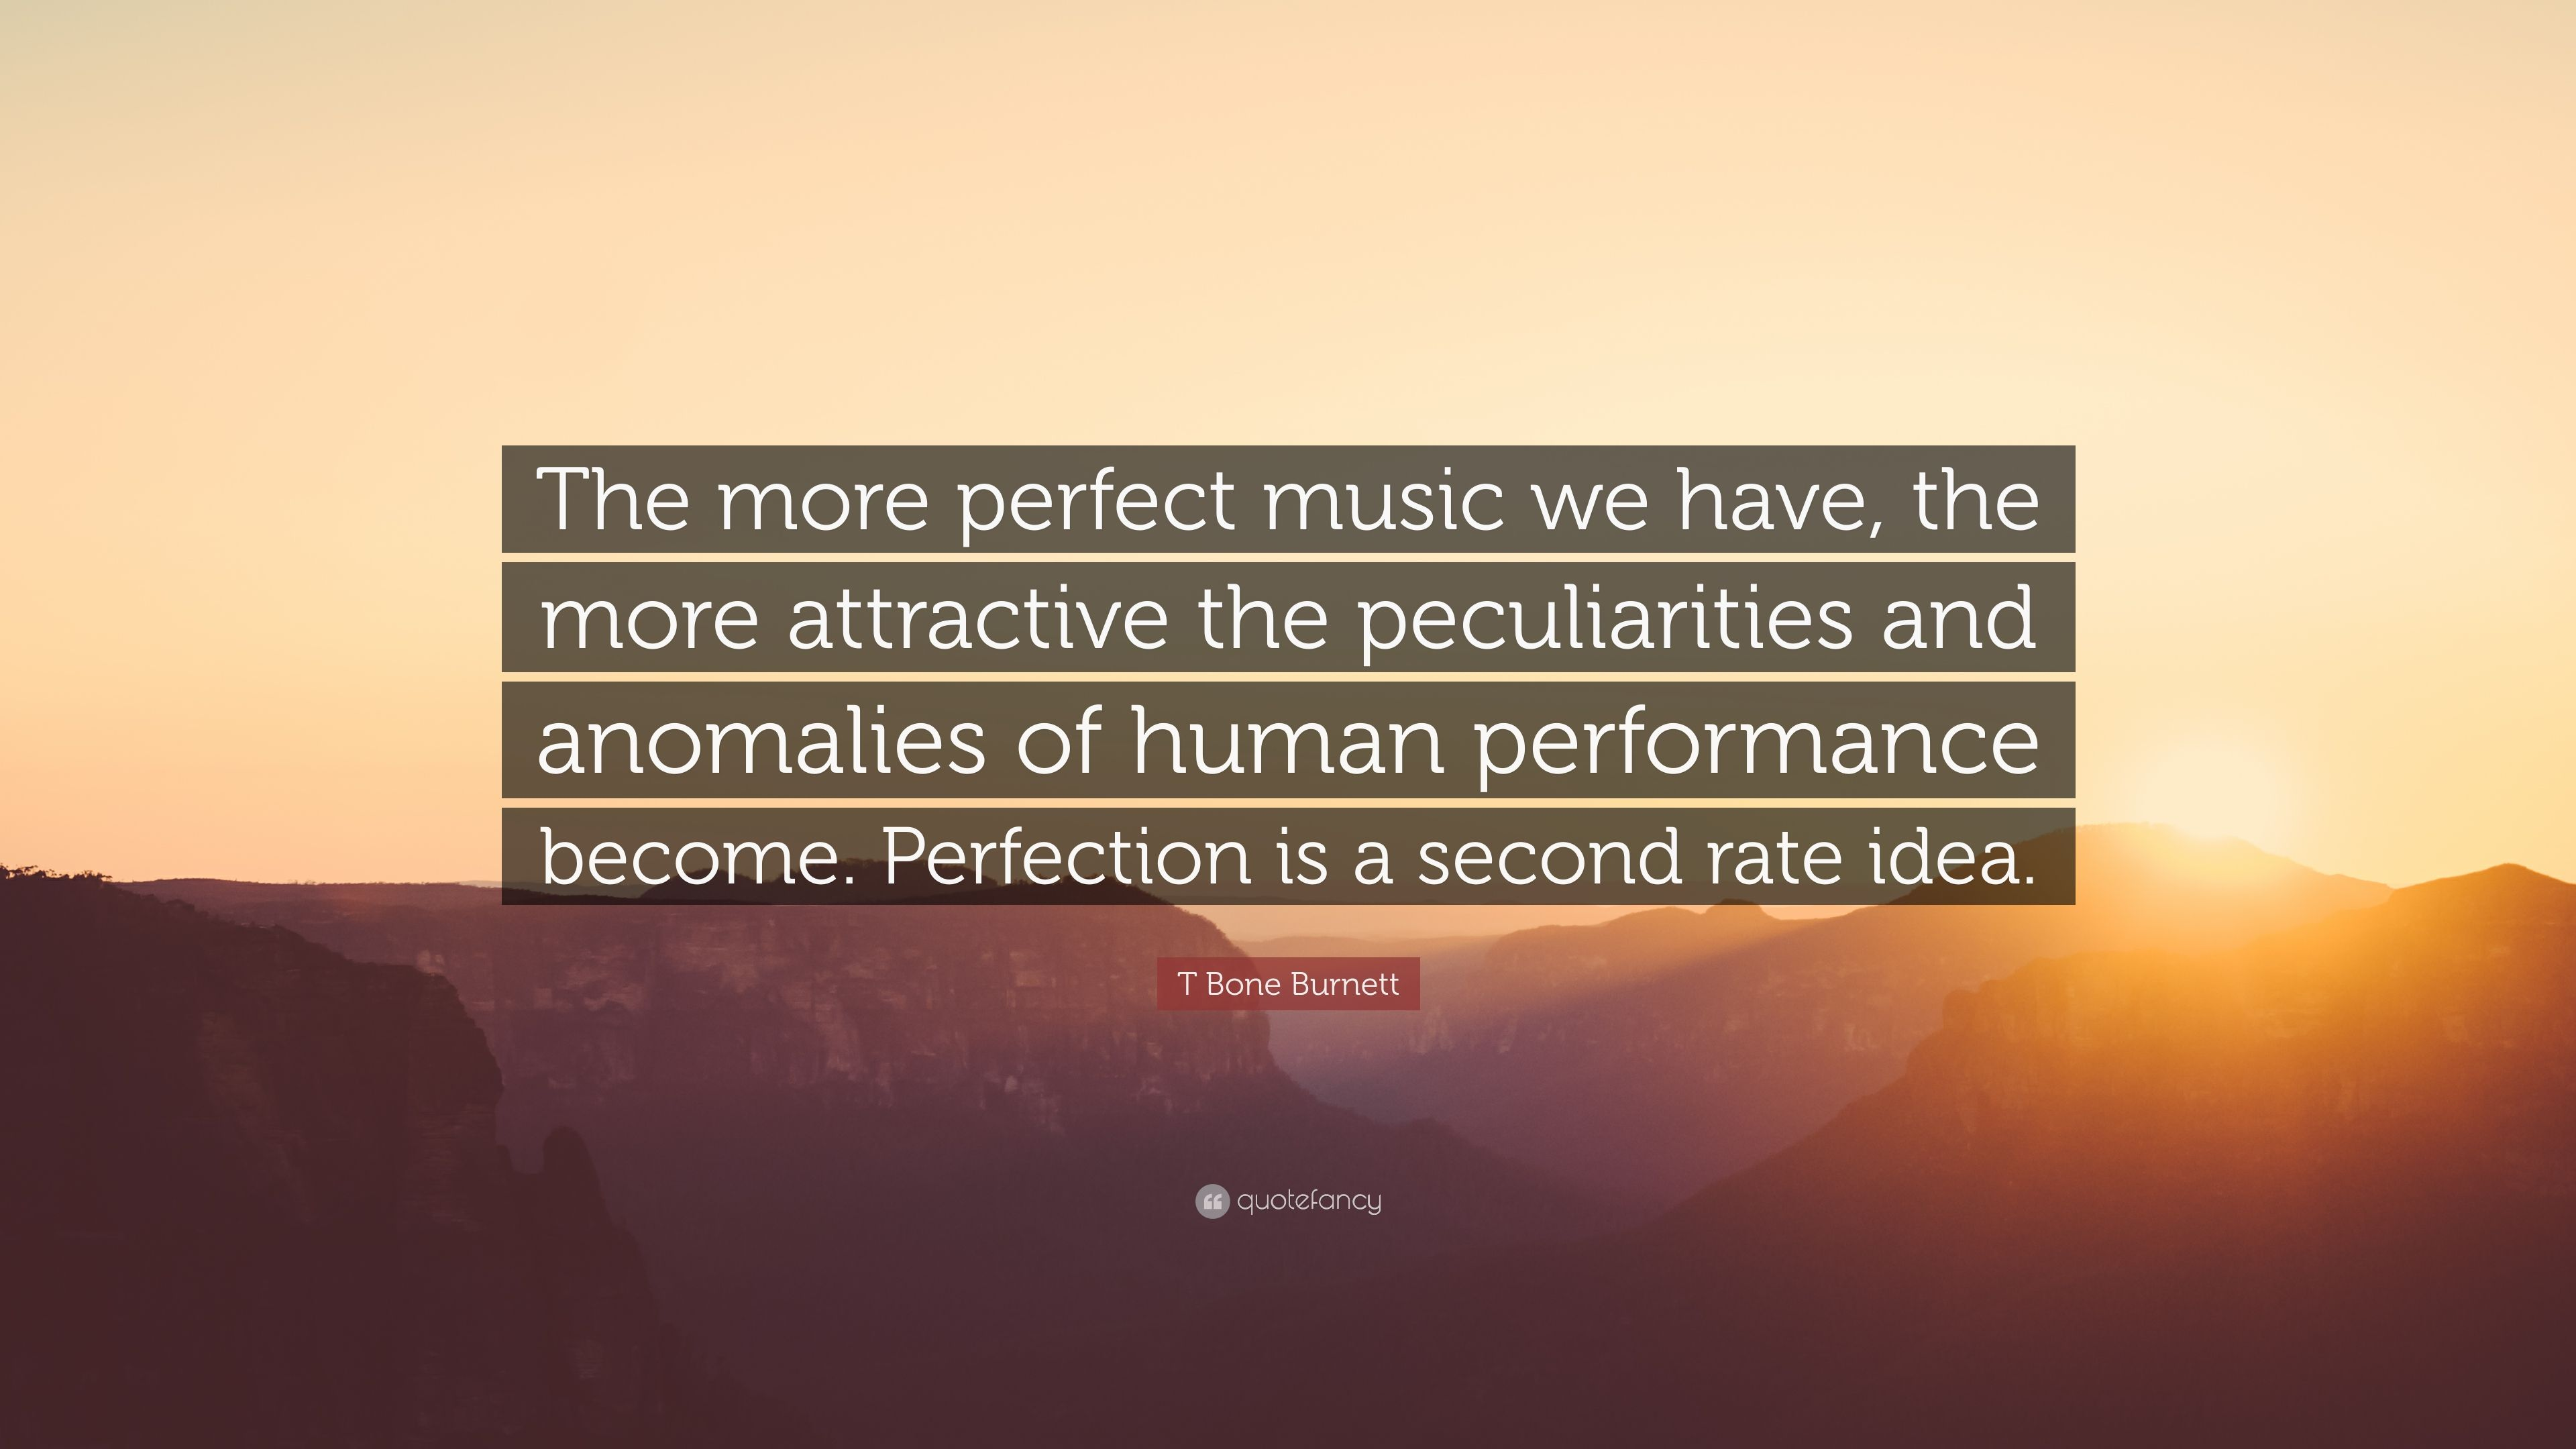 How to become more perfect